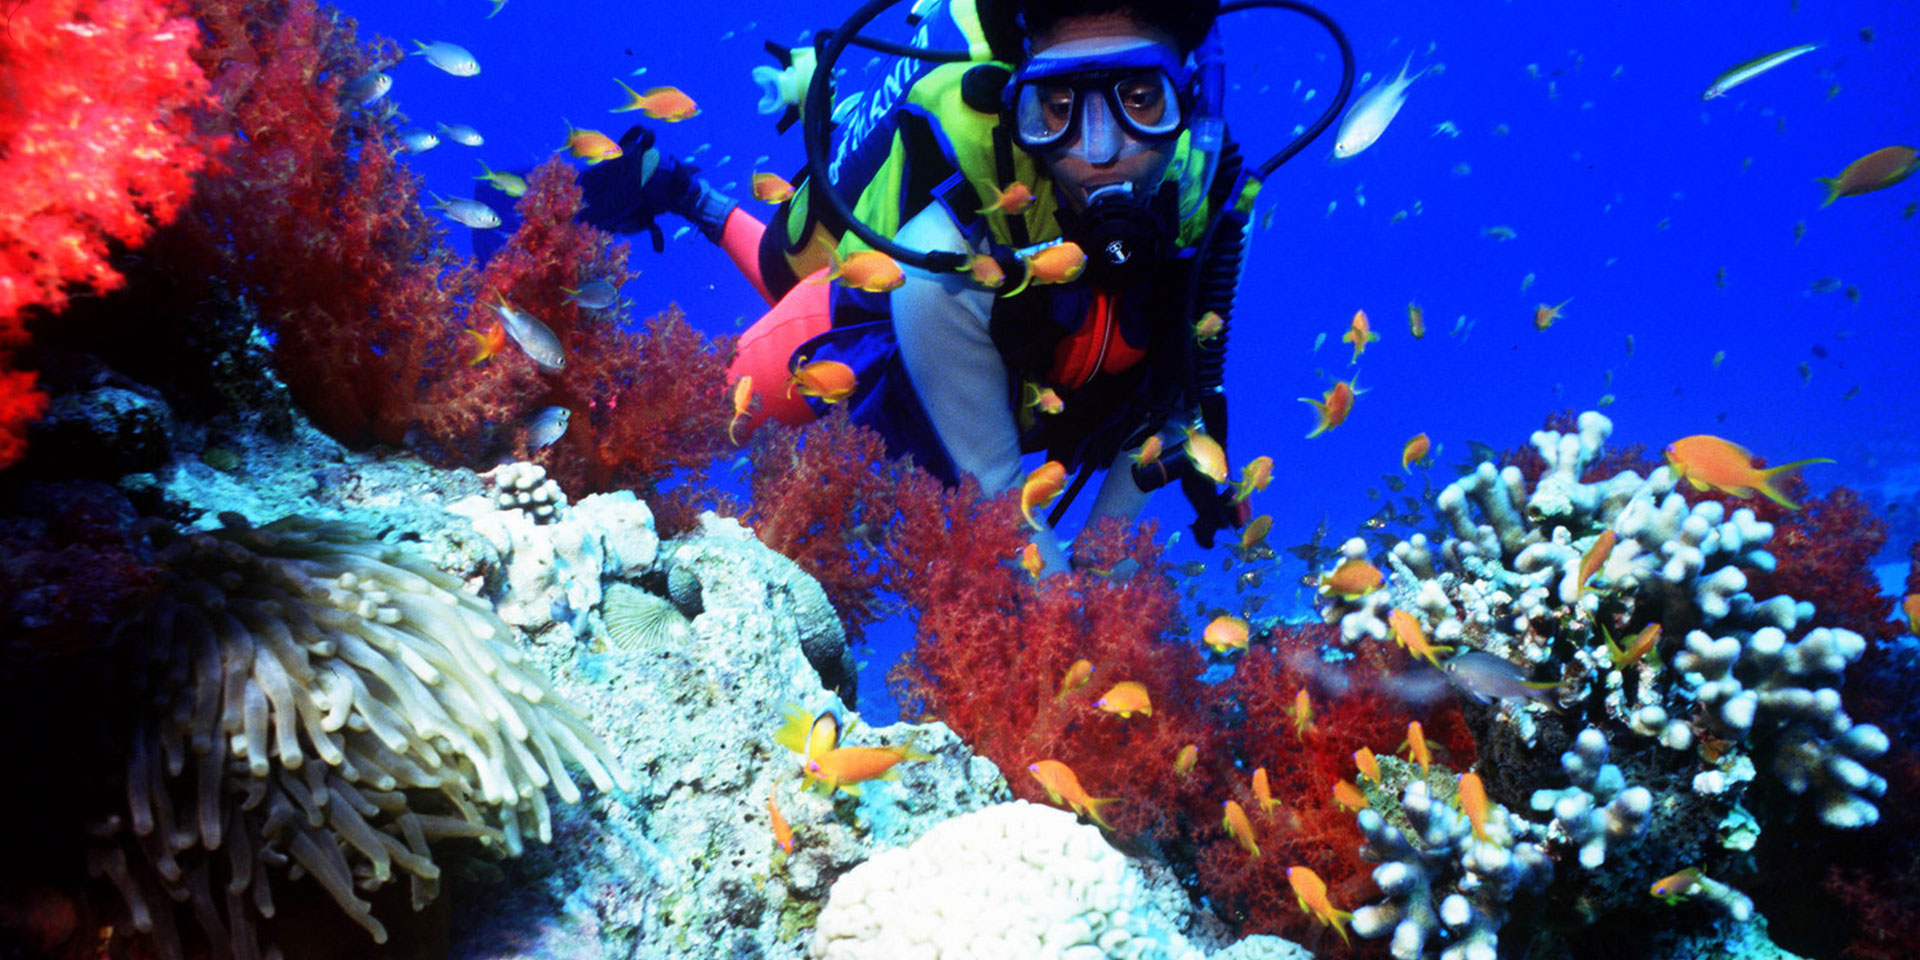 A traveler engages in an Aquatic tour in the Mombasa Marine Park